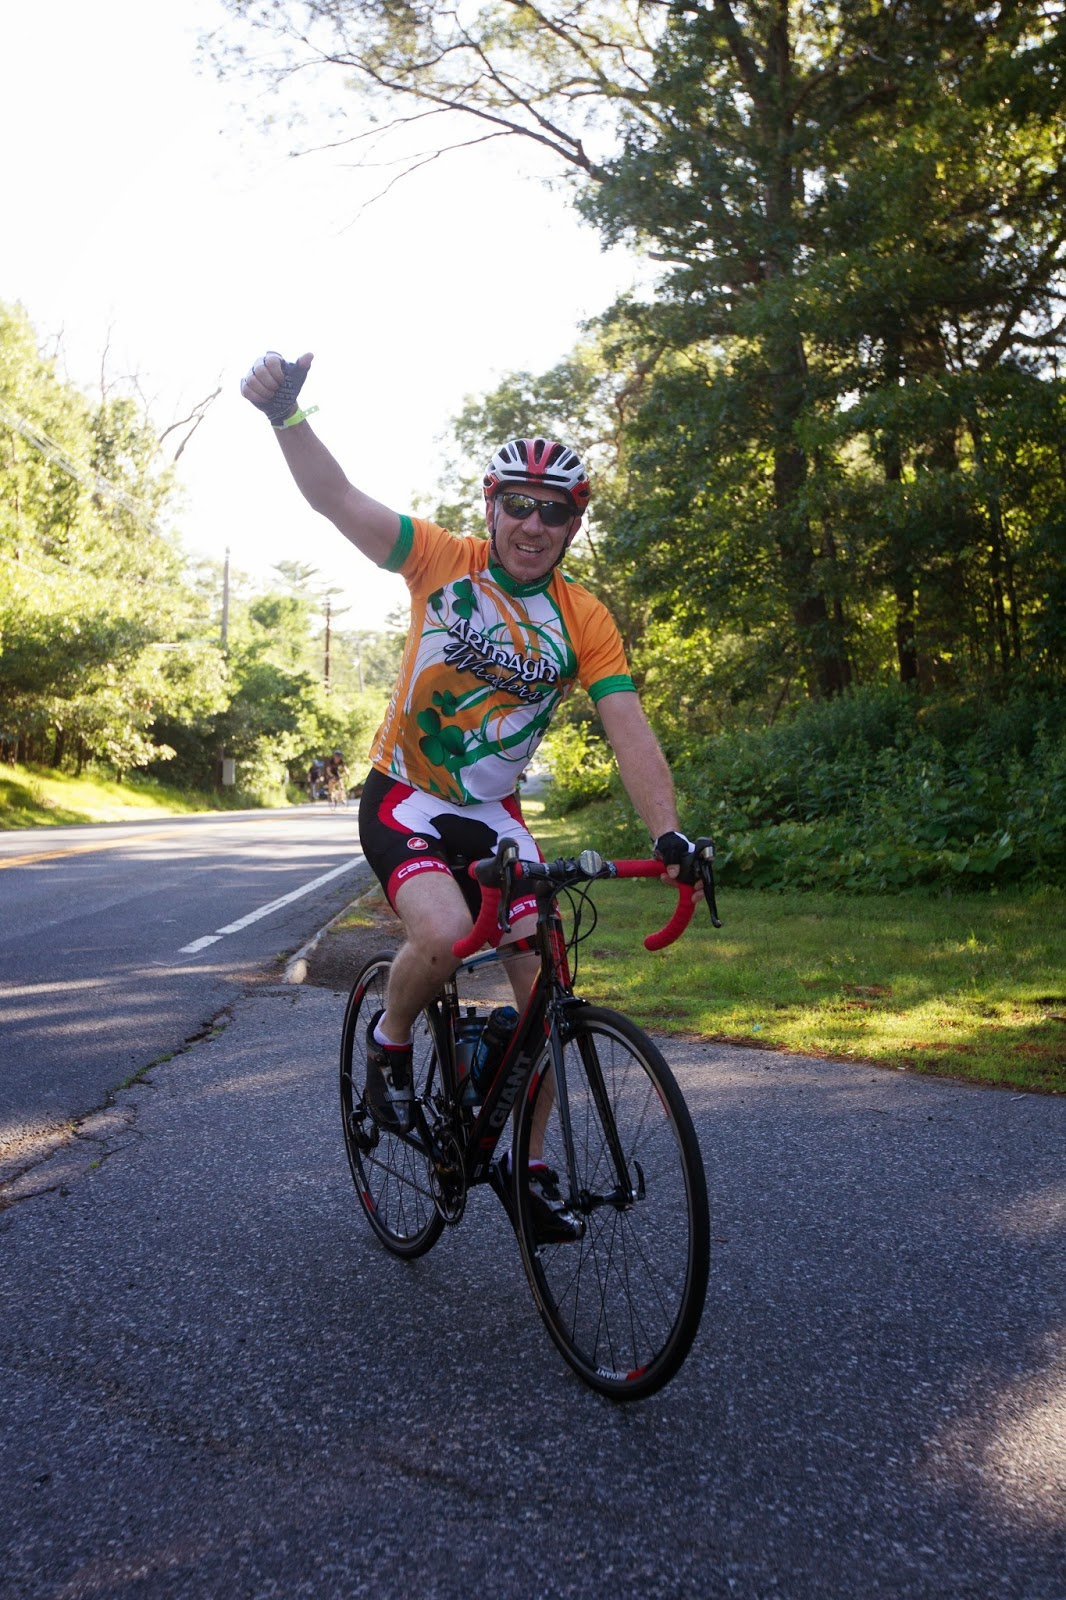 Boro Photography: Creative Visions, Tri-State Trek, 270 Miles Boston to Greenwich to end ALS, New England Wedding and Event Photography